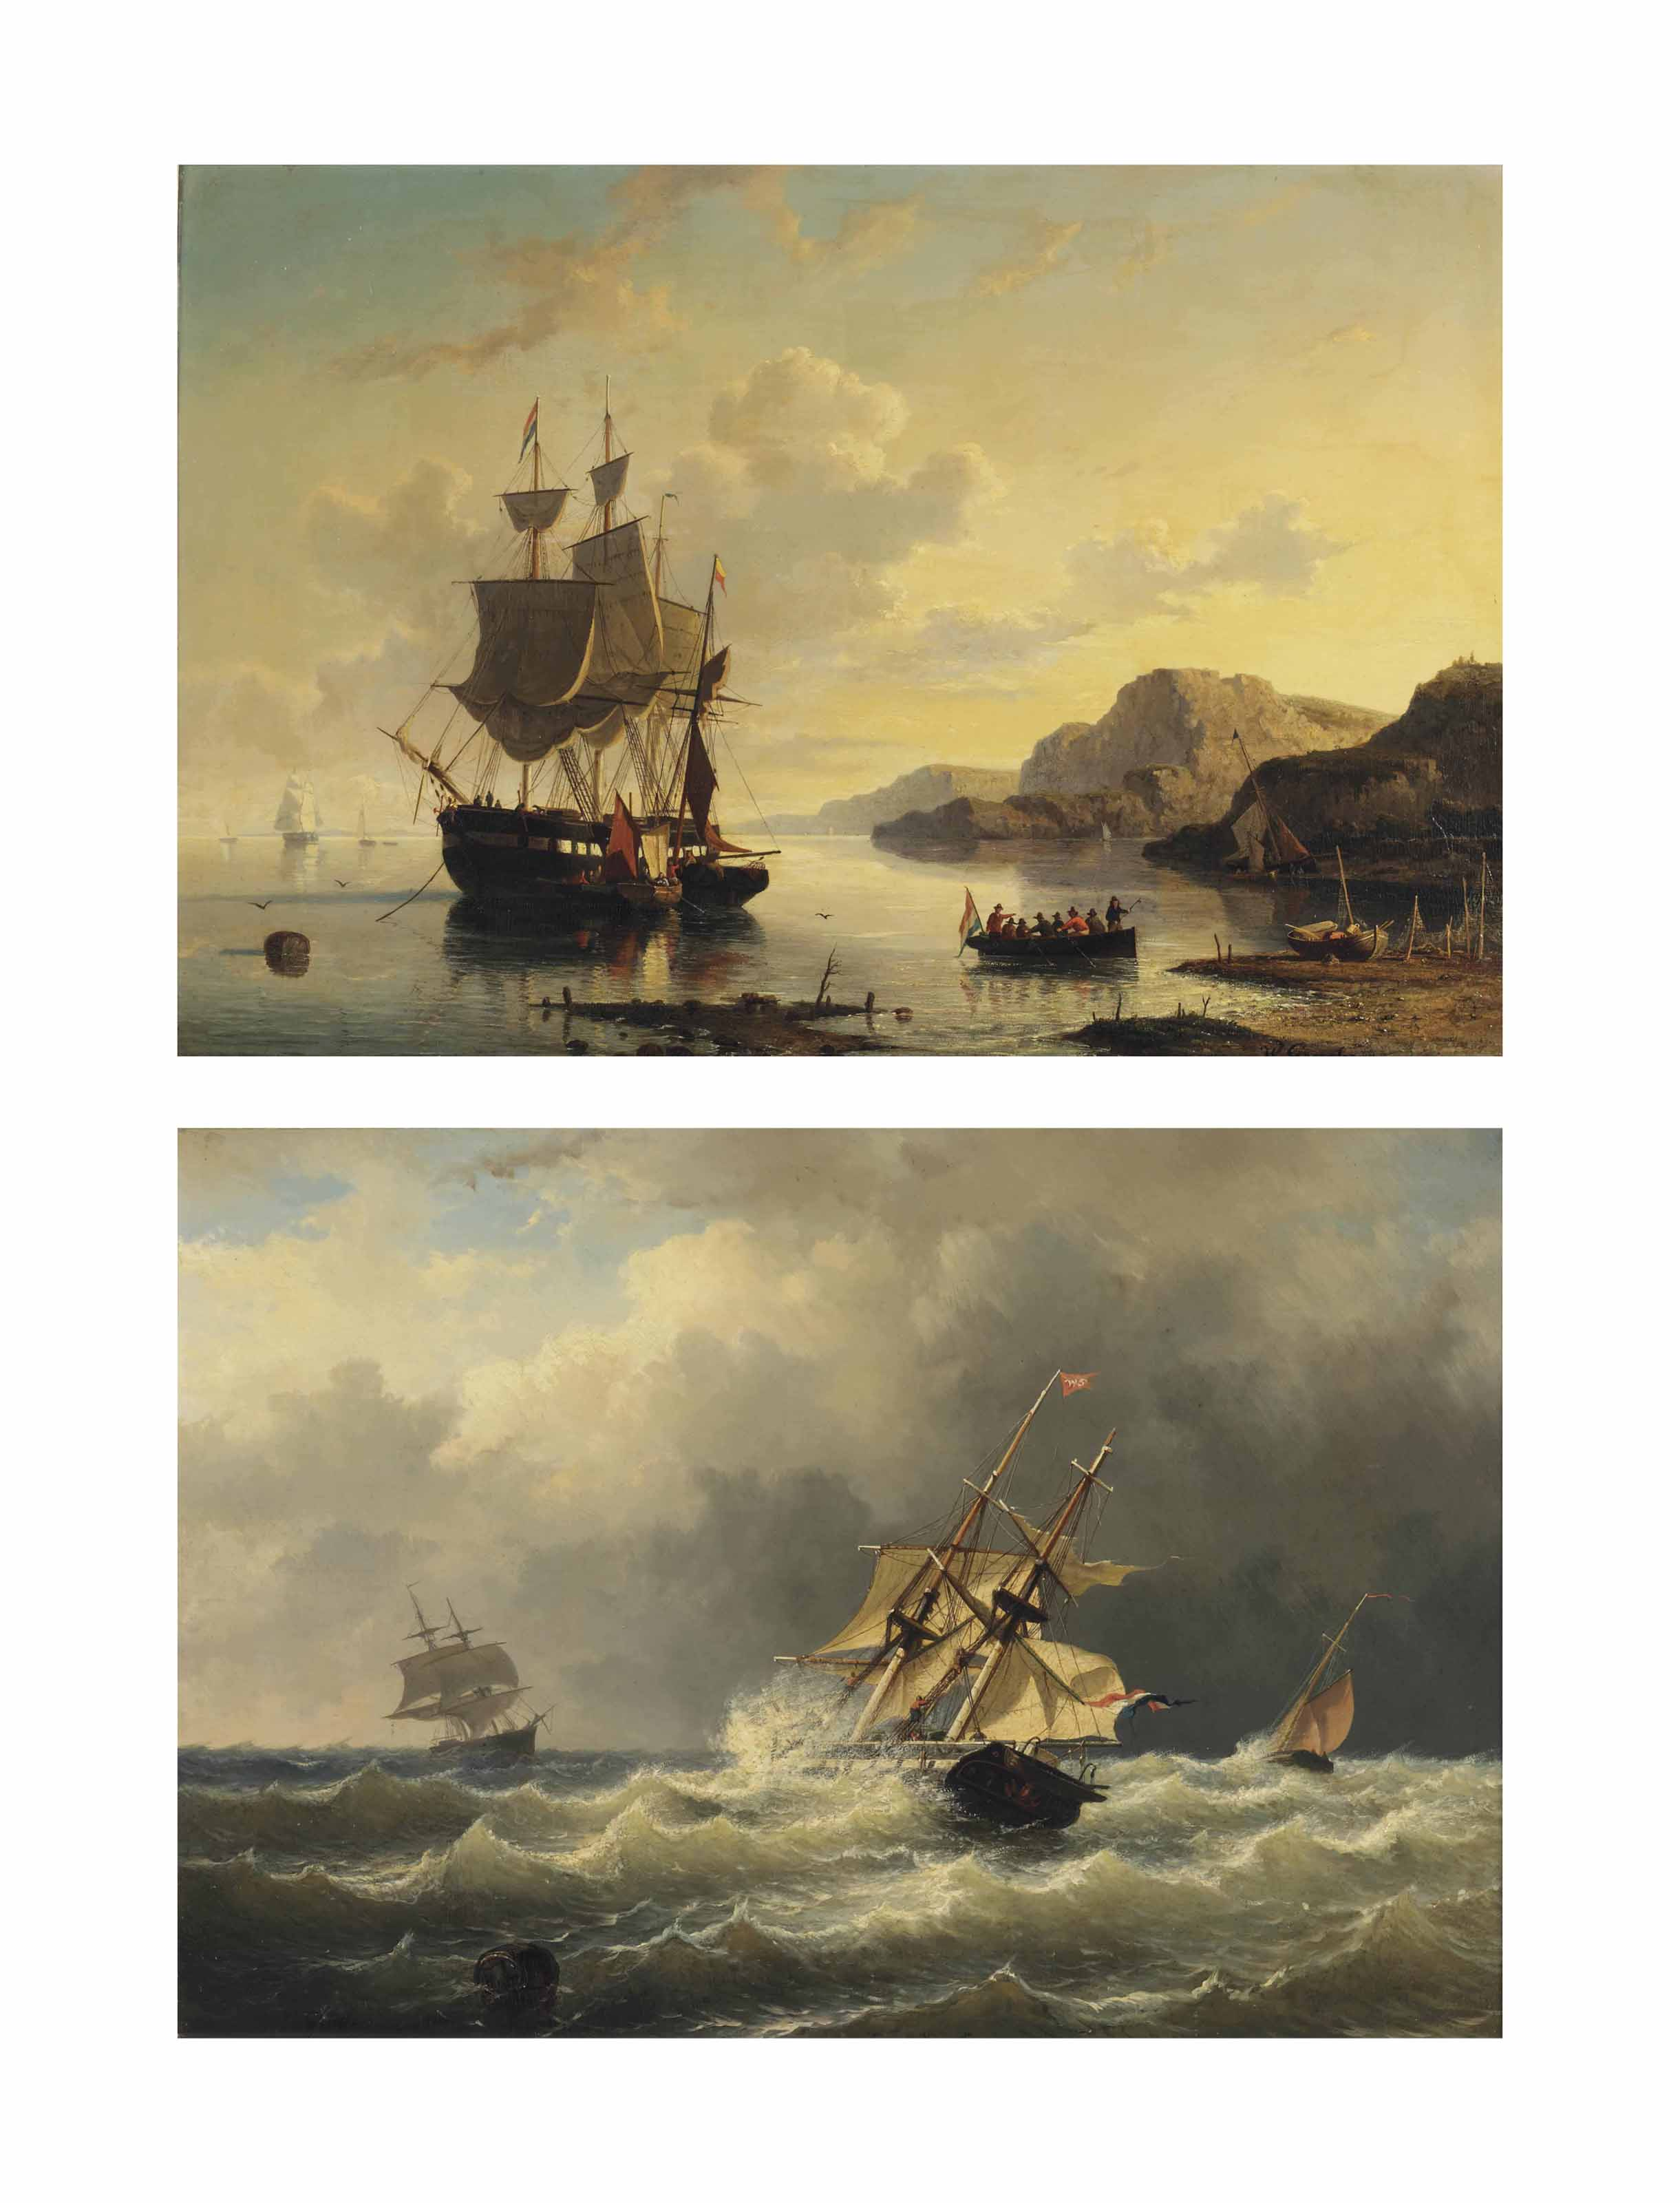 A Dutch three-master at anchor in a bay; and A Dutch two-master braving the waves